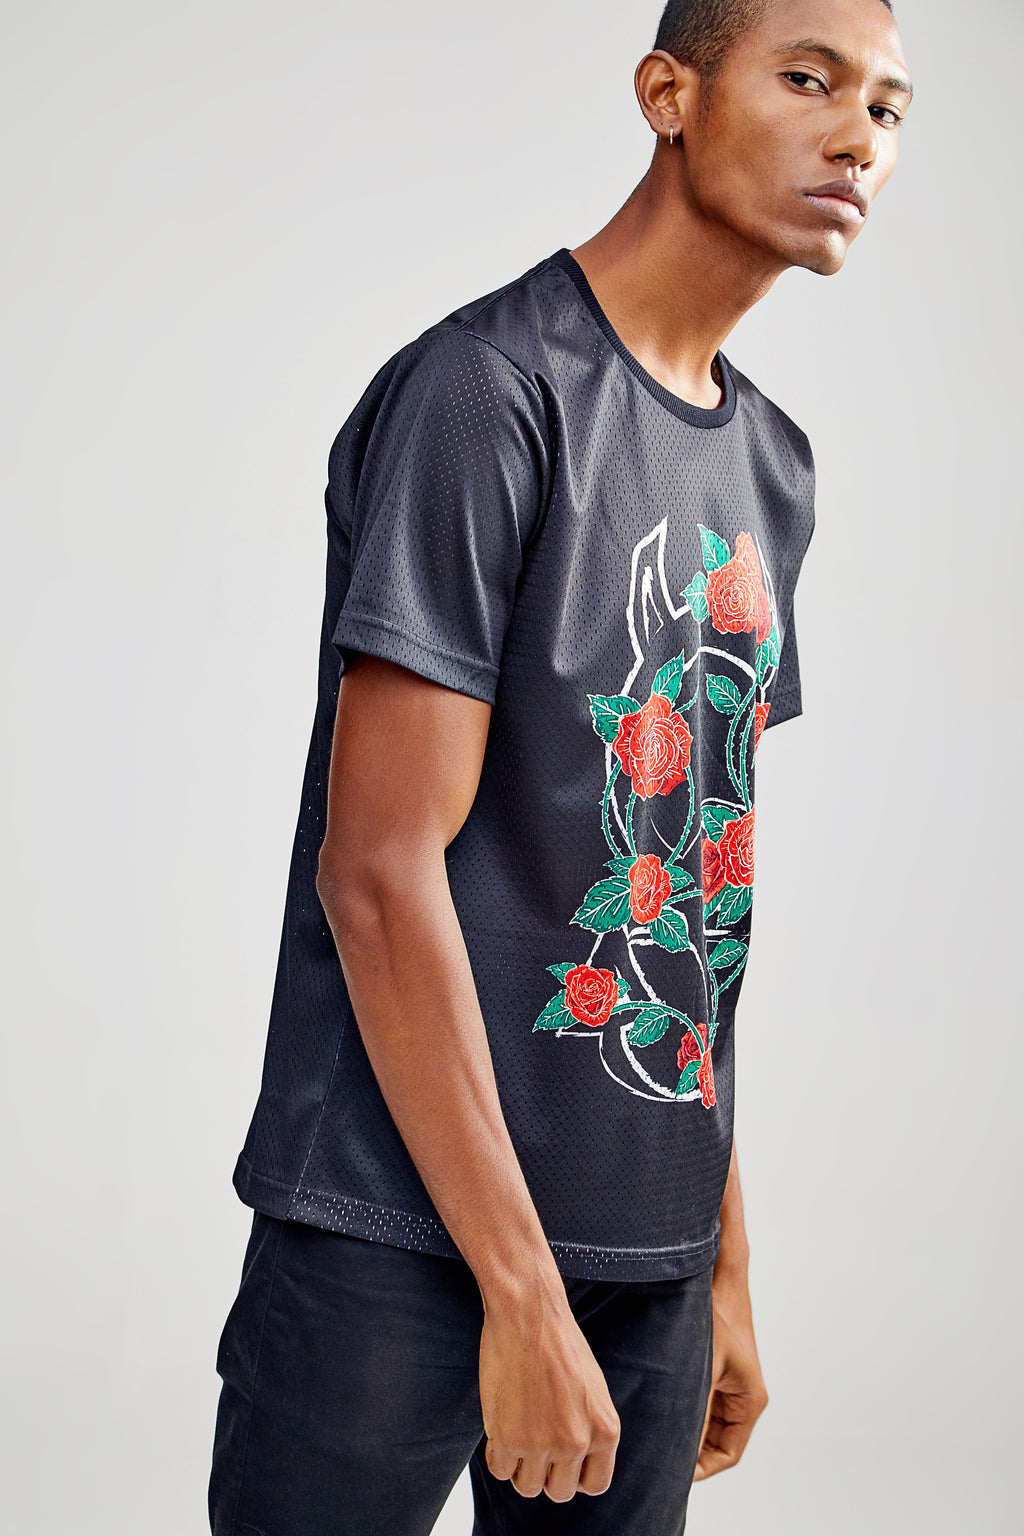 OG FLOWER BLACK T-SHIRT